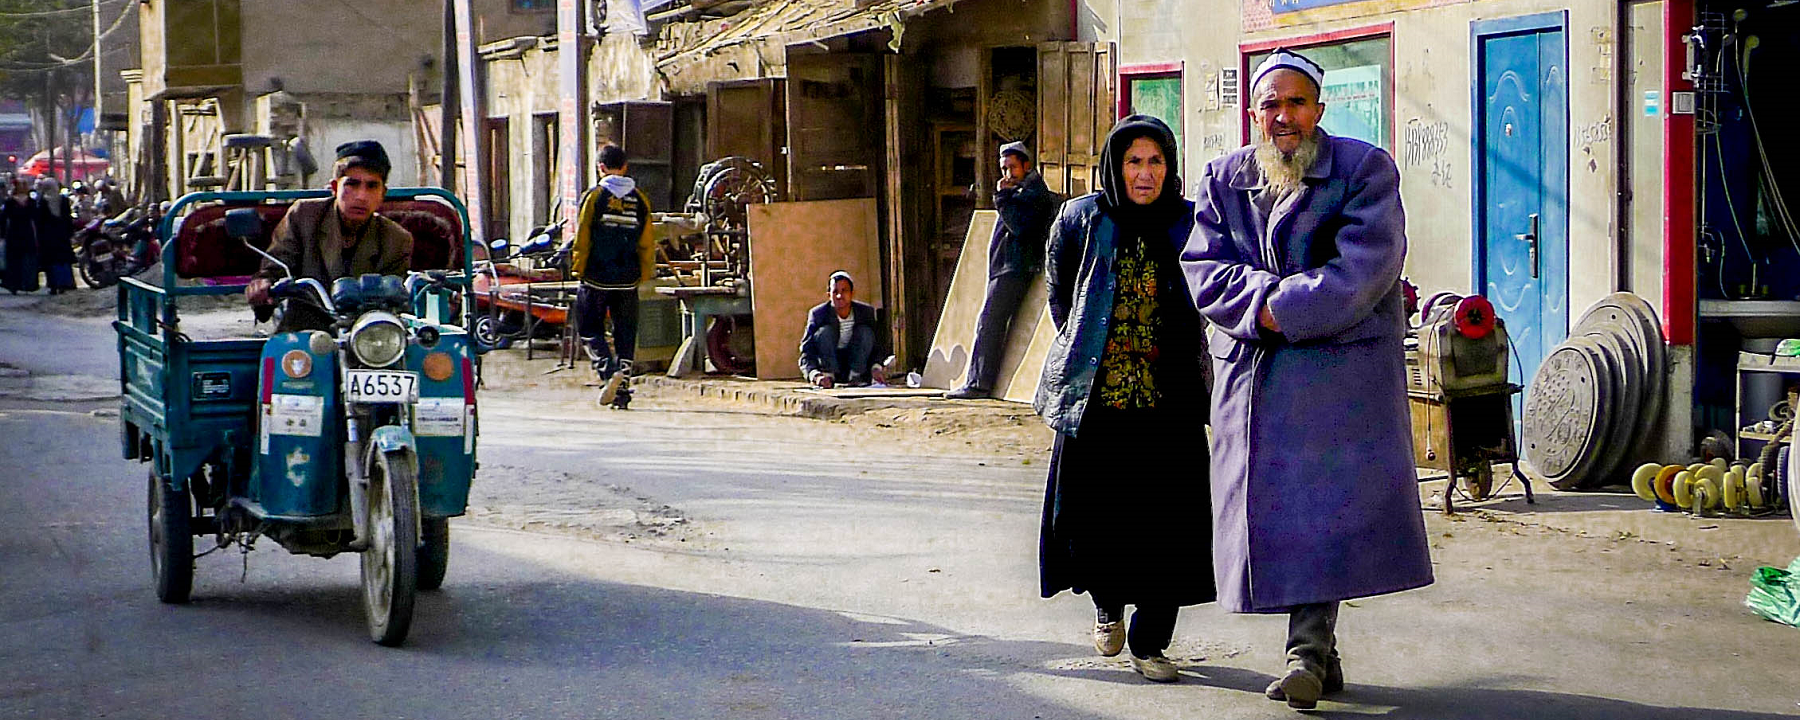 China Is Using DNA from Uighurs to Predict Physical Features